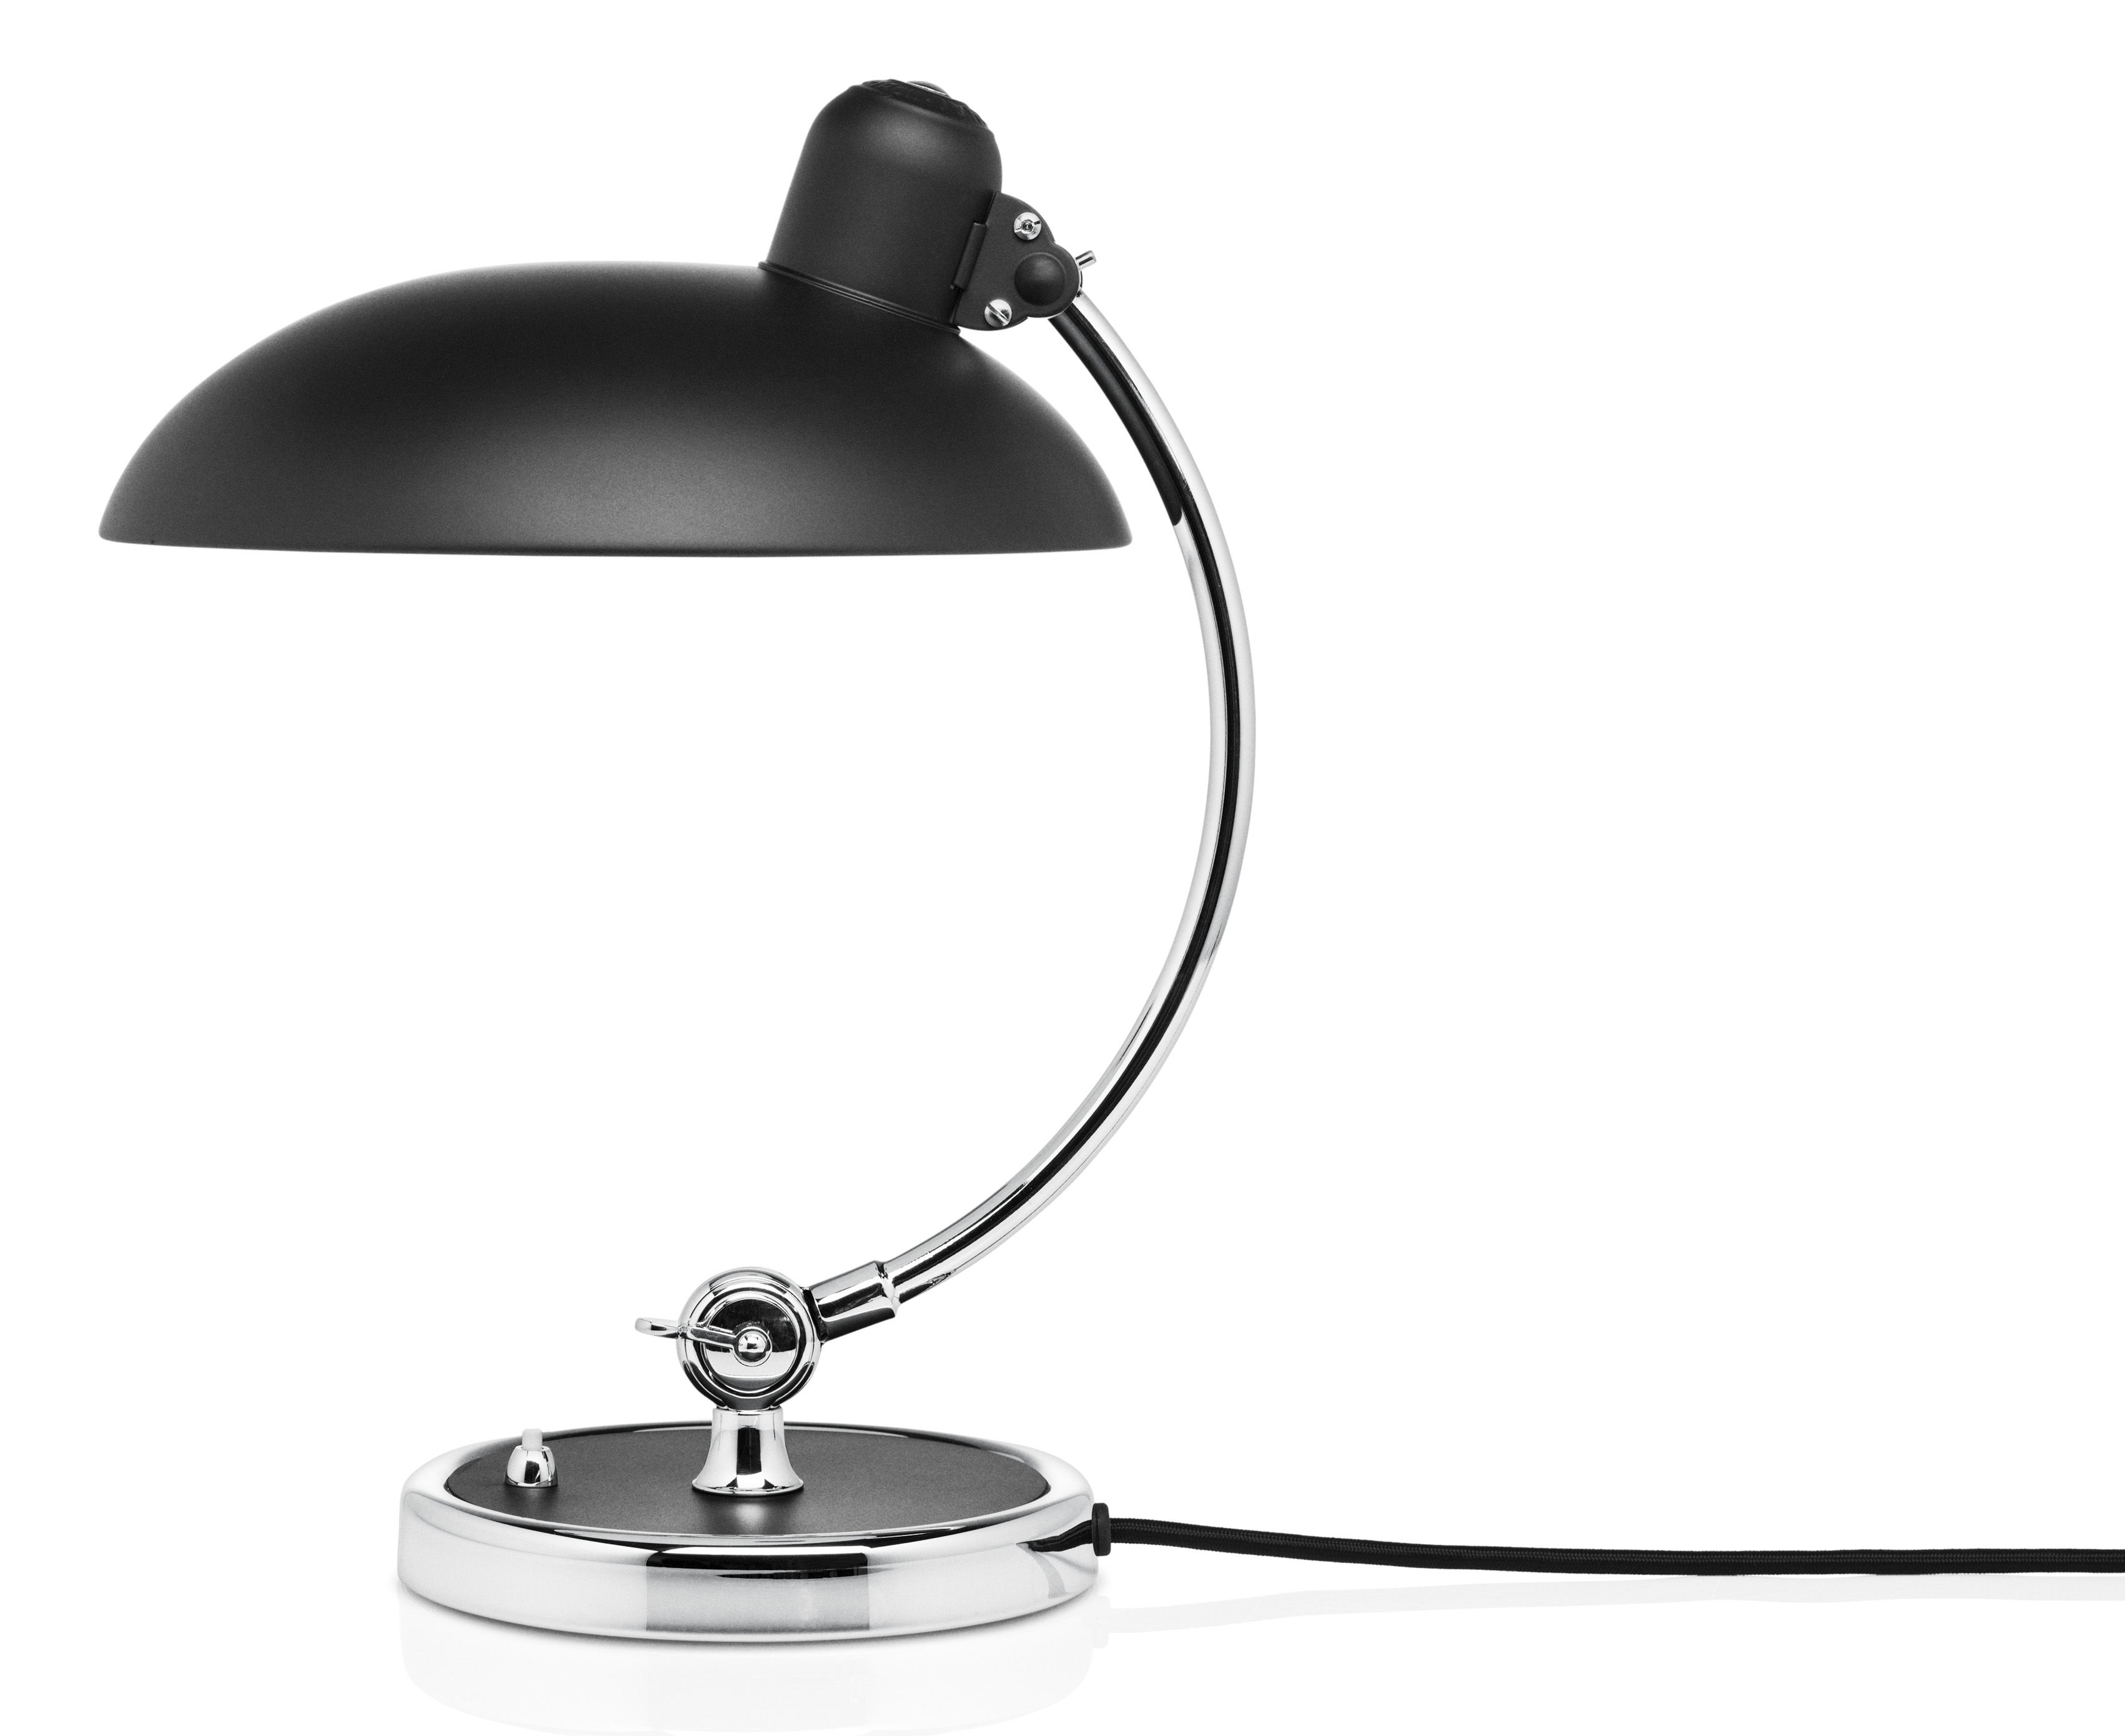 kaiser idell table lamp h 42 5 cm glossy black by fritz. Black Bedroom Furniture Sets. Home Design Ideas